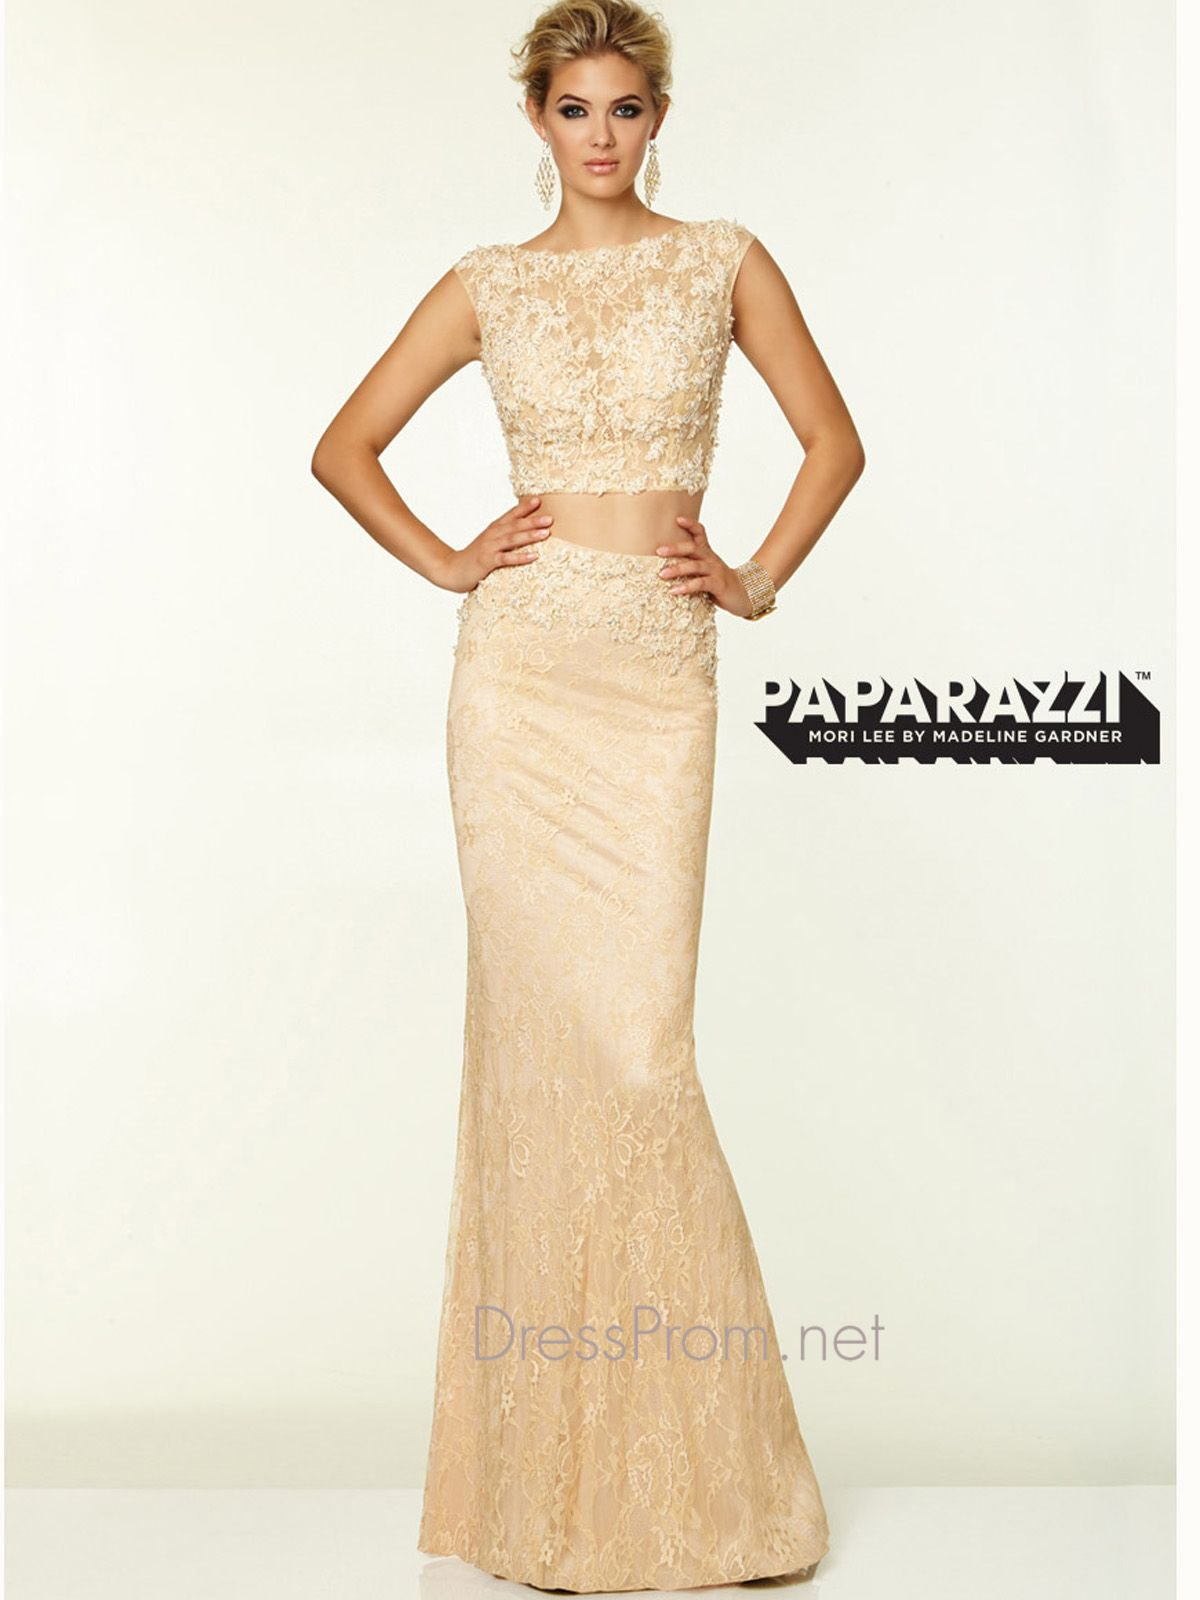 Be on top in sophistication by wearing this two piece lace paparazzi